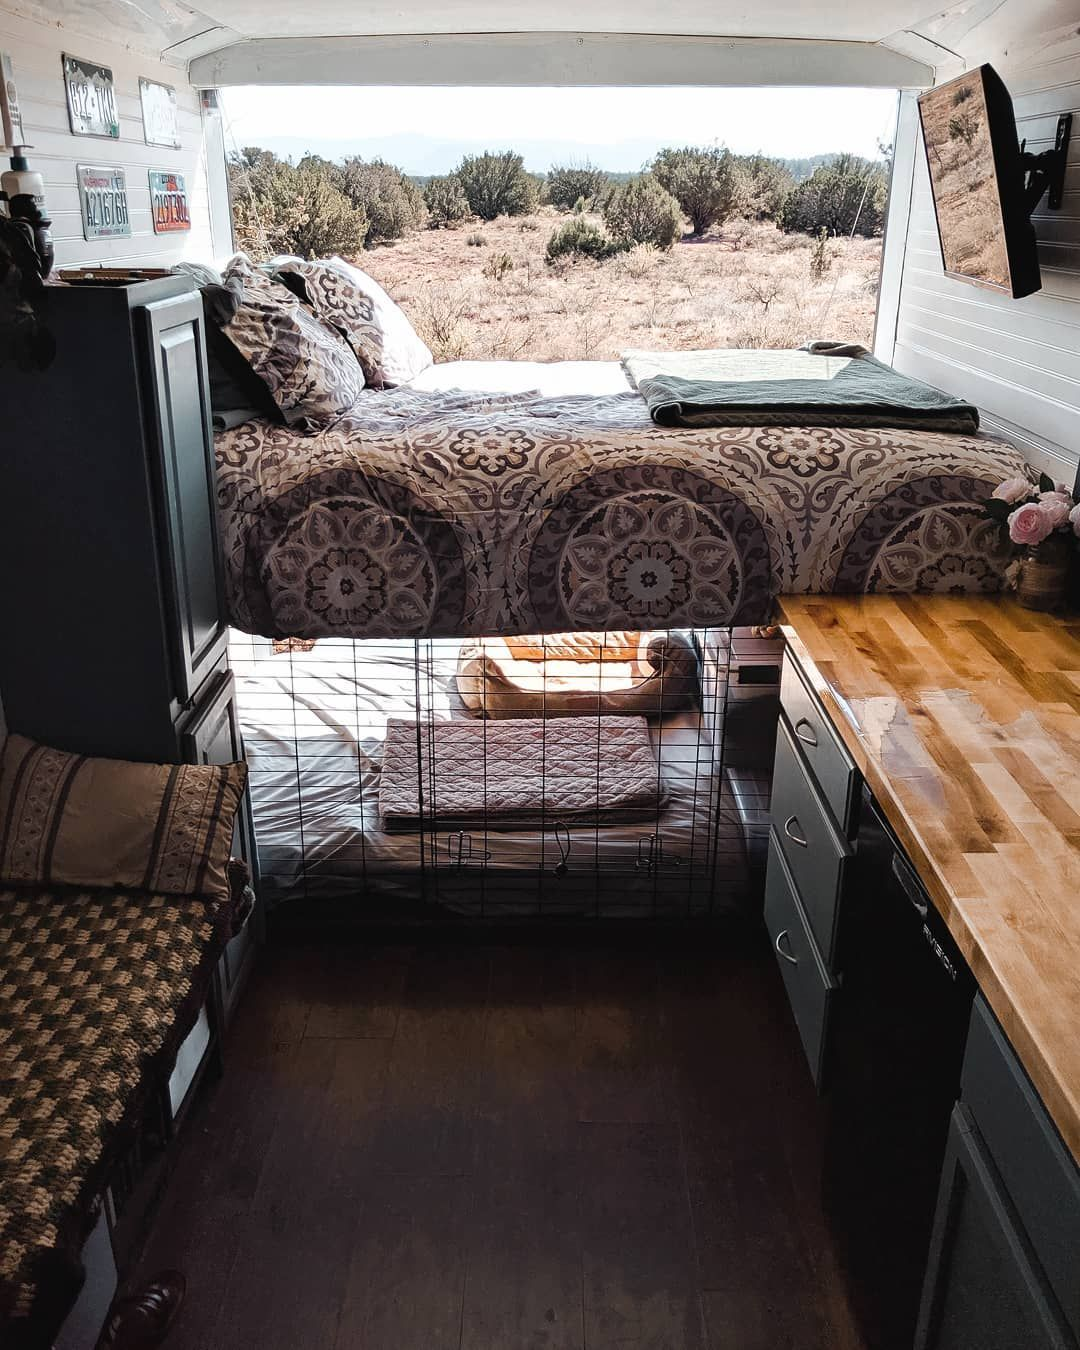 "Full Time RV Living on Instagram: ""One month of downsizing my stuff, my wardrobe and living in our tiny home, inside of a 112 sq ft converted cargo trailer. I'm learning to…"" #tinylivingideas"